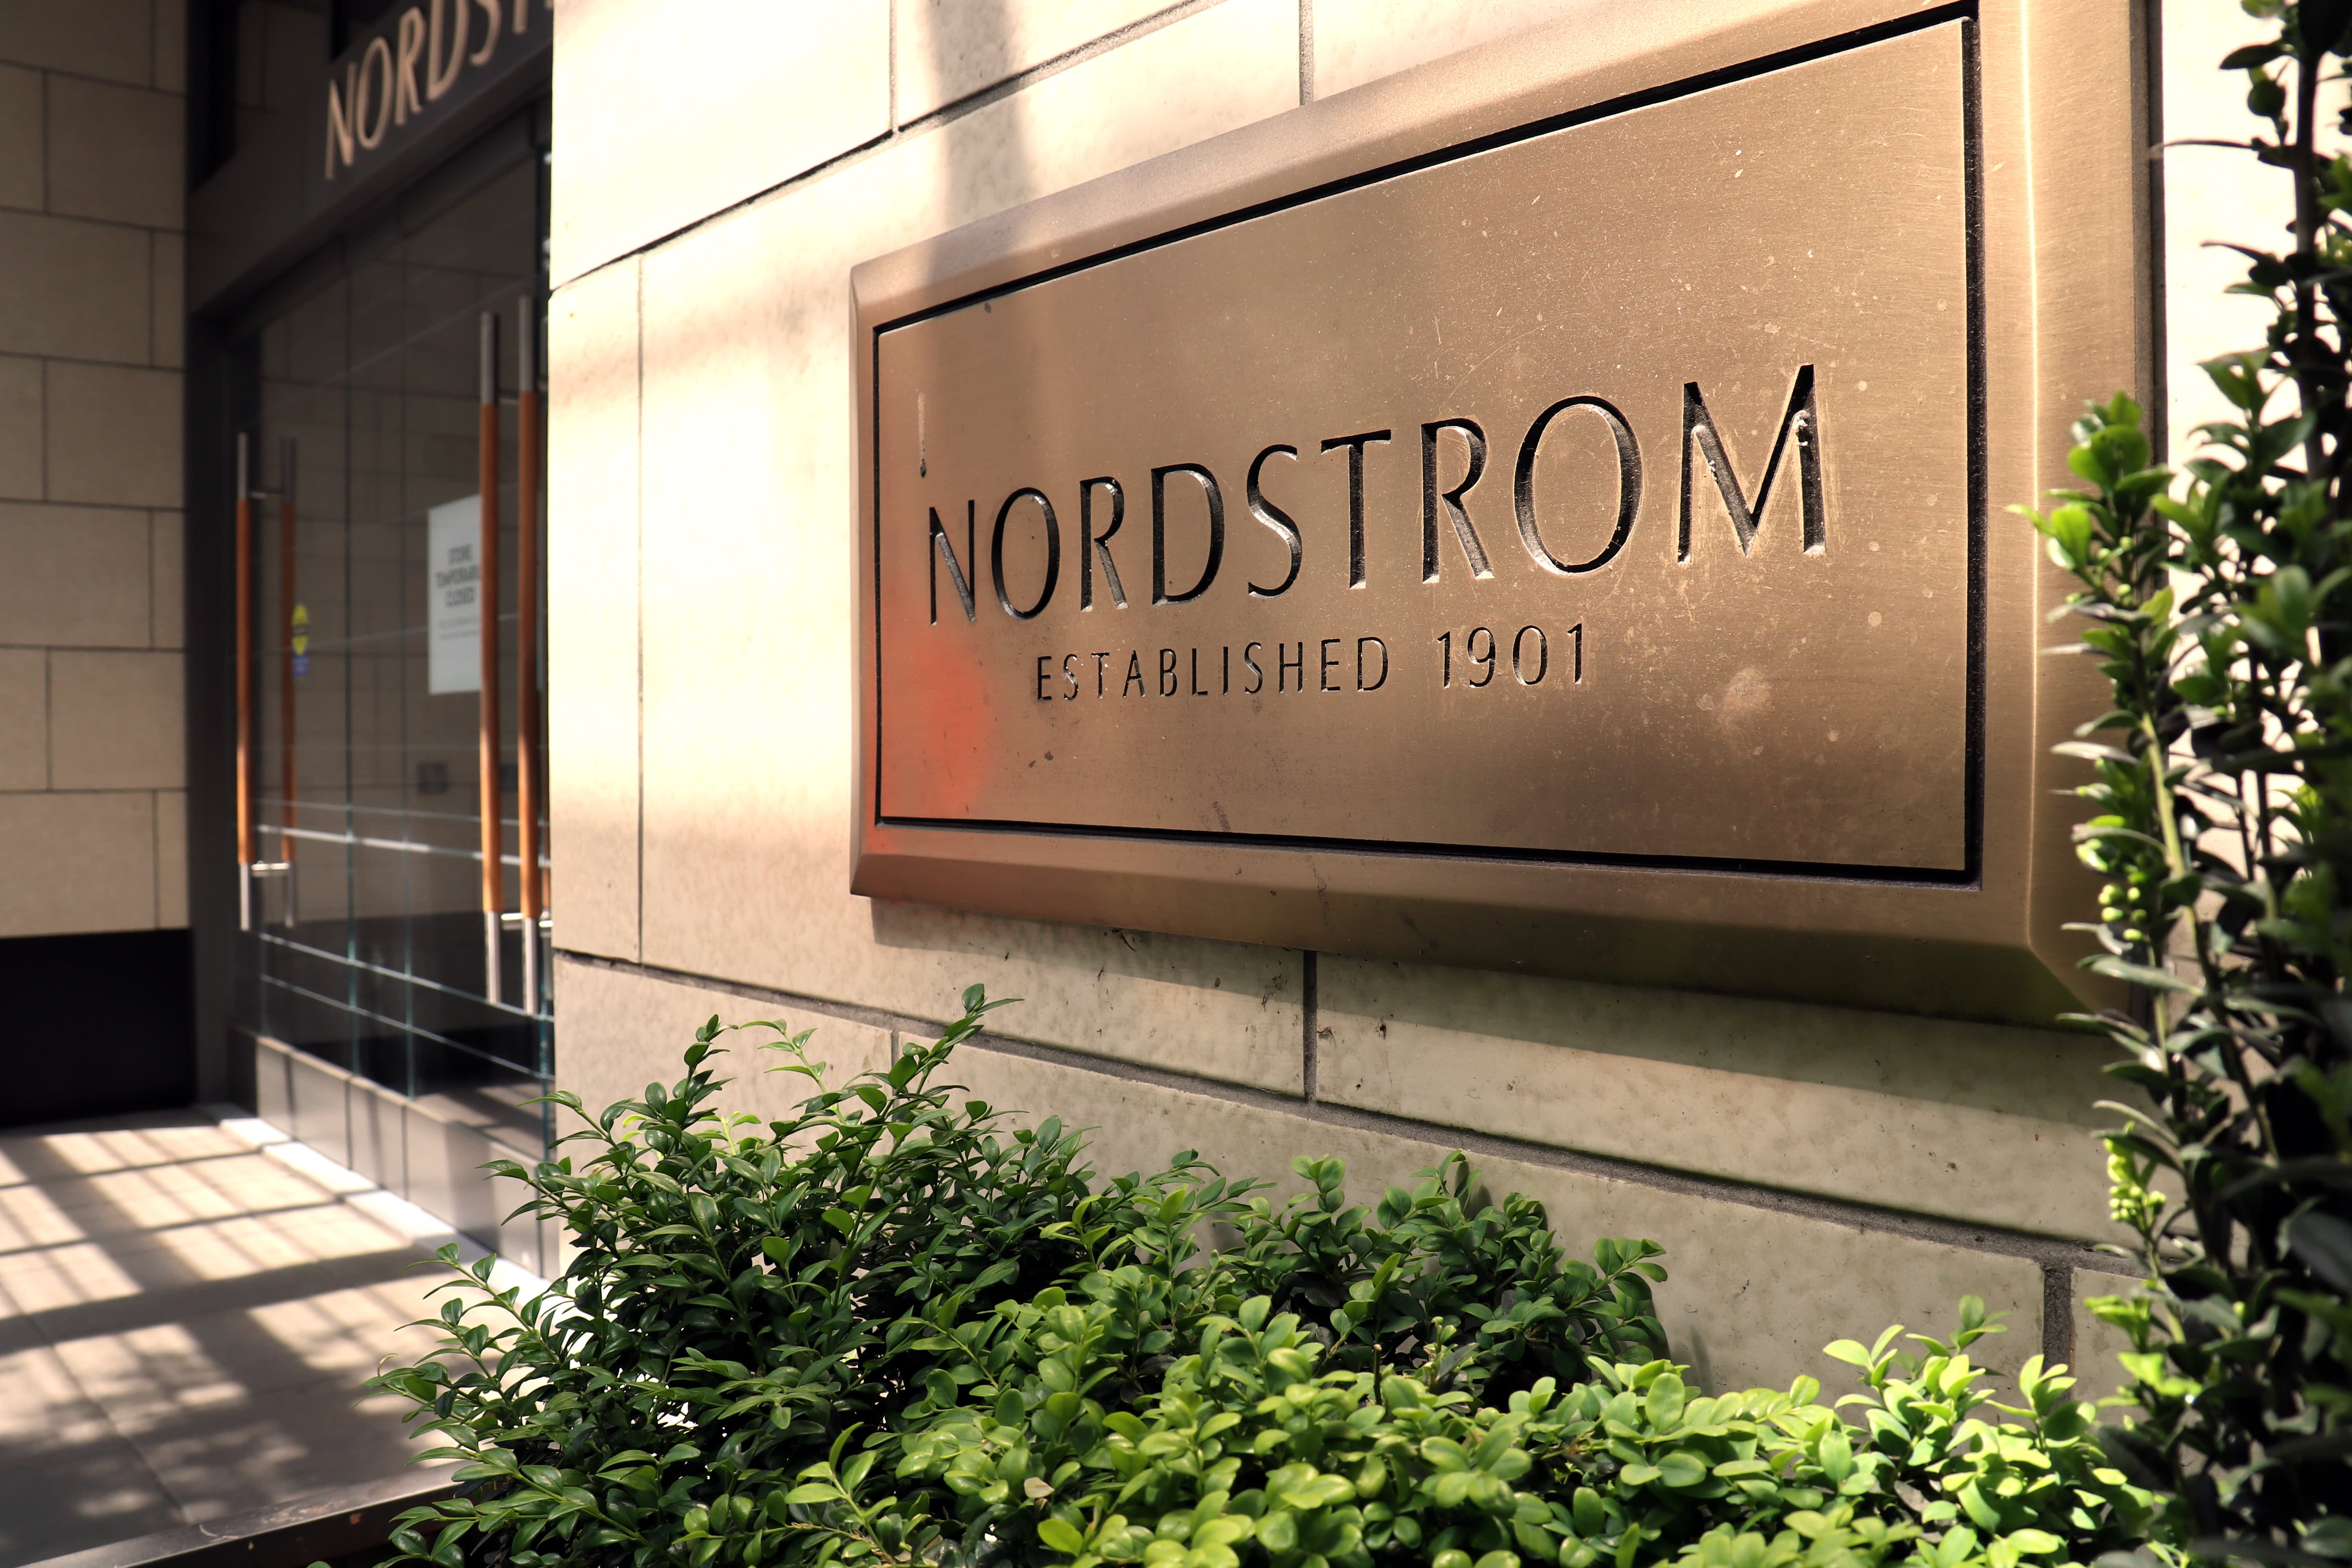 Nordstrom (JWN) reports Q1 2020 net loss